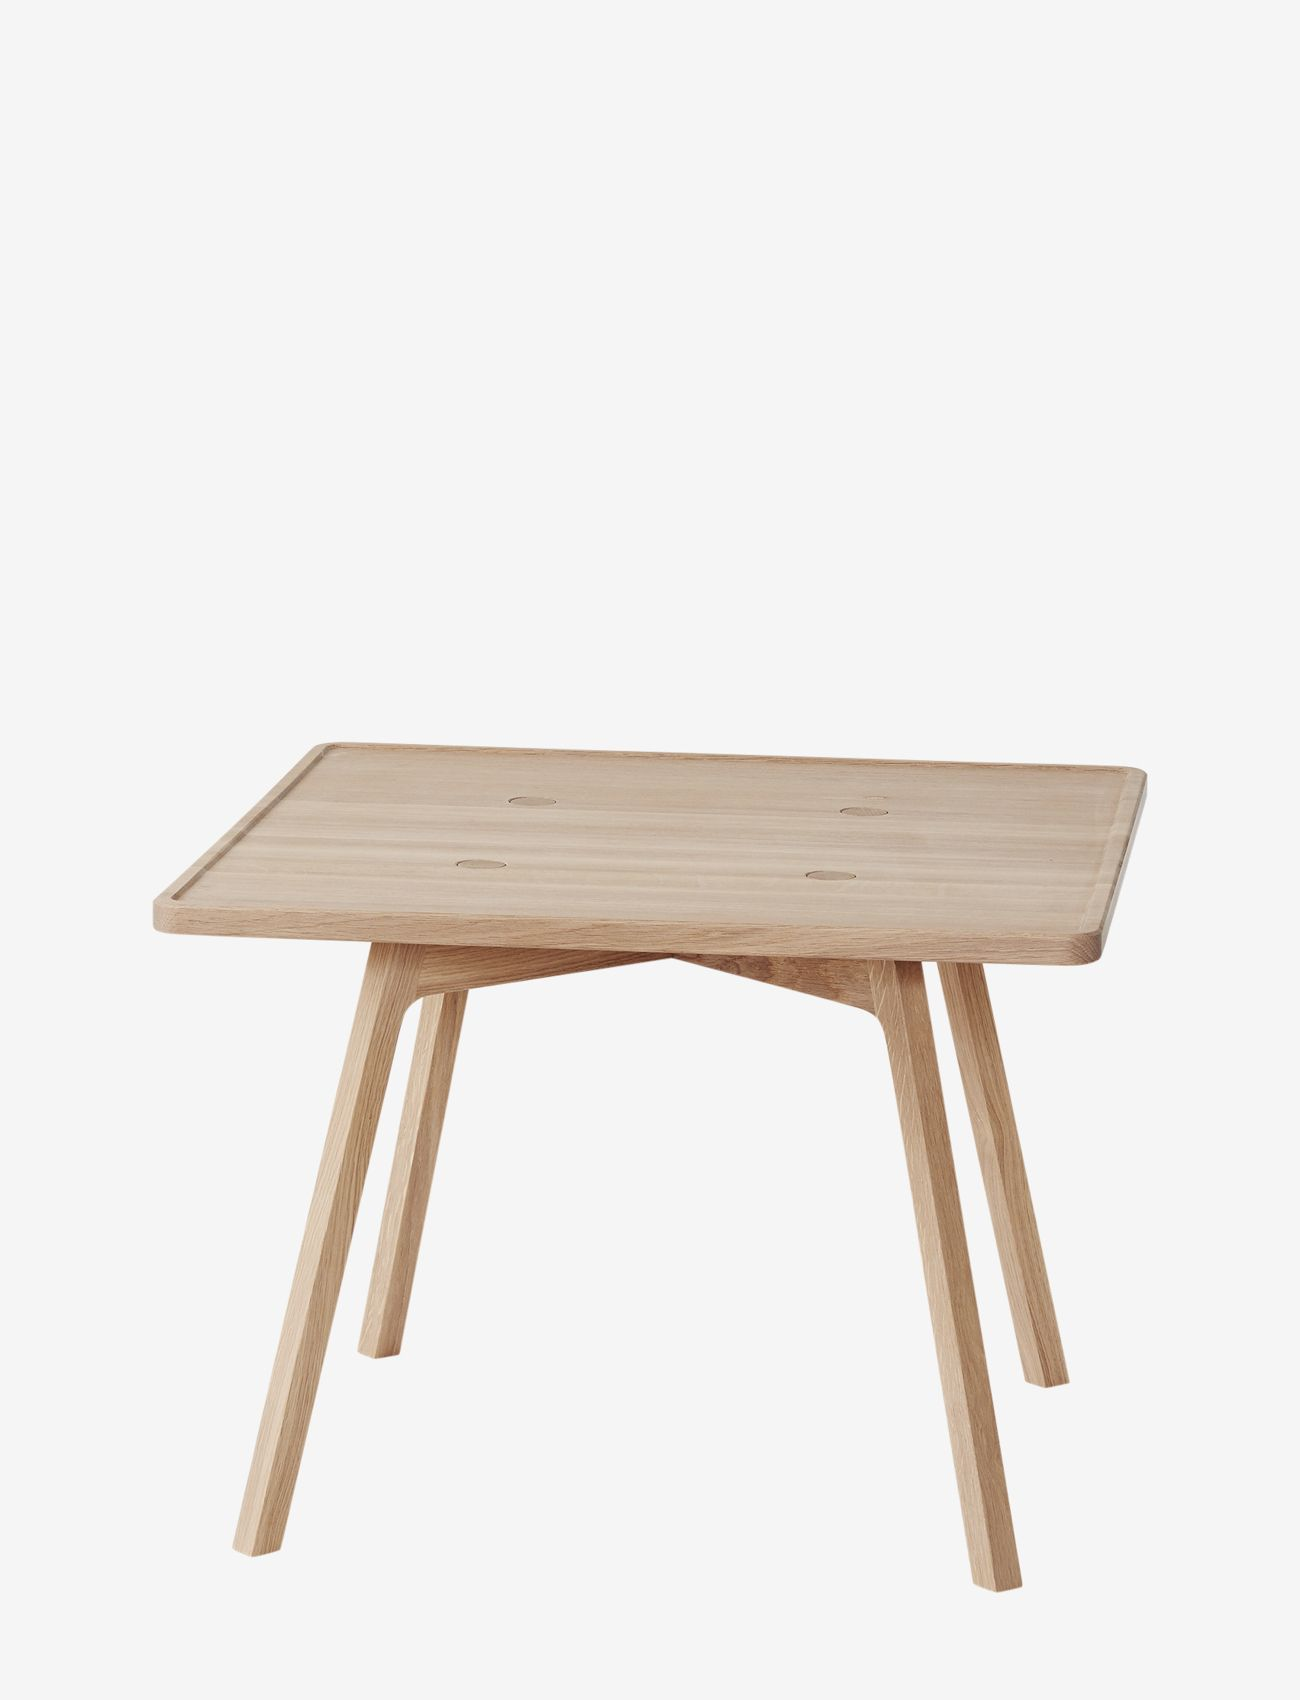 Andersen Furniture - C2 coffee table - bord - nature - 0